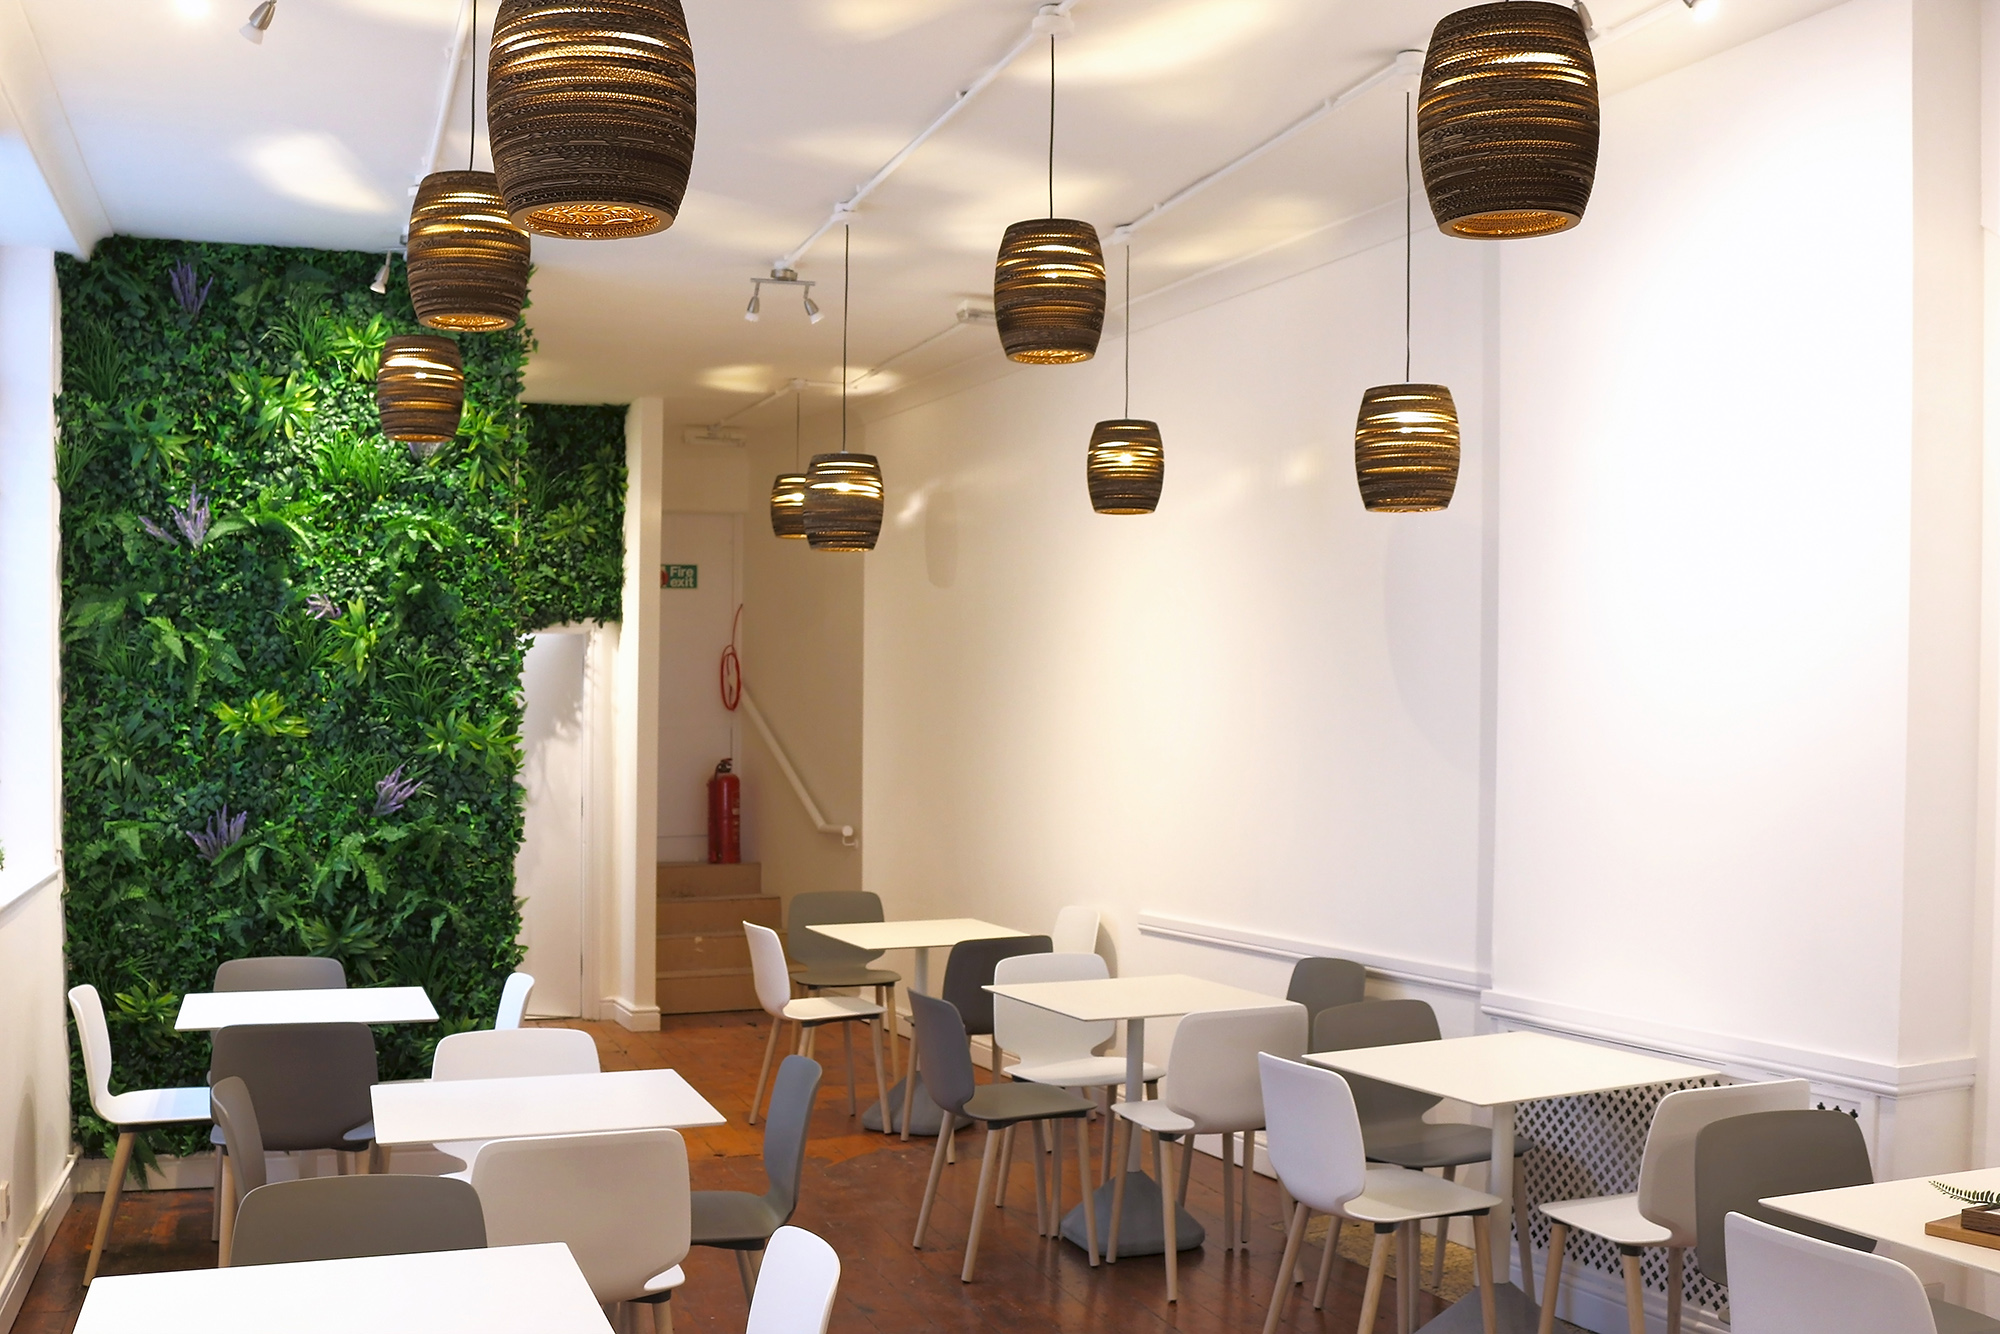 Chatime Nottingham, live wall, cardboard lampshade, interior Design Nottingham, Dezigne